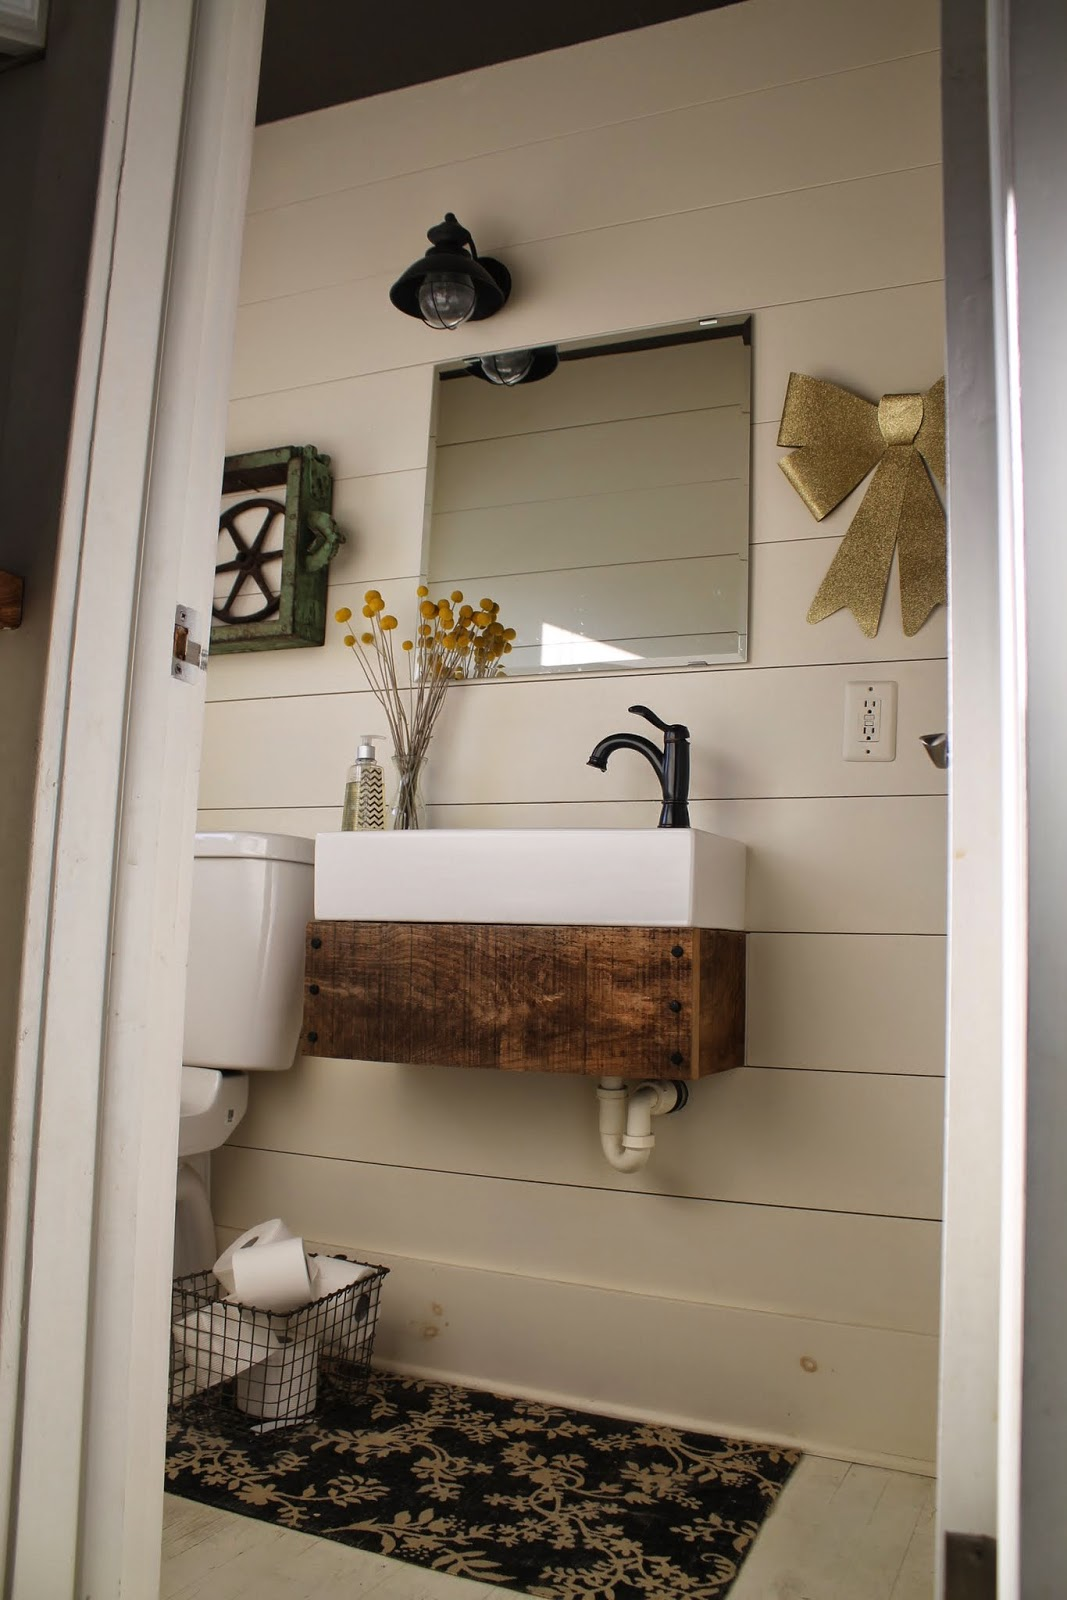 Trend industrial style bathroom with planked walls and DIY floating reclaimed wood vanity Girl Meets Carpenter